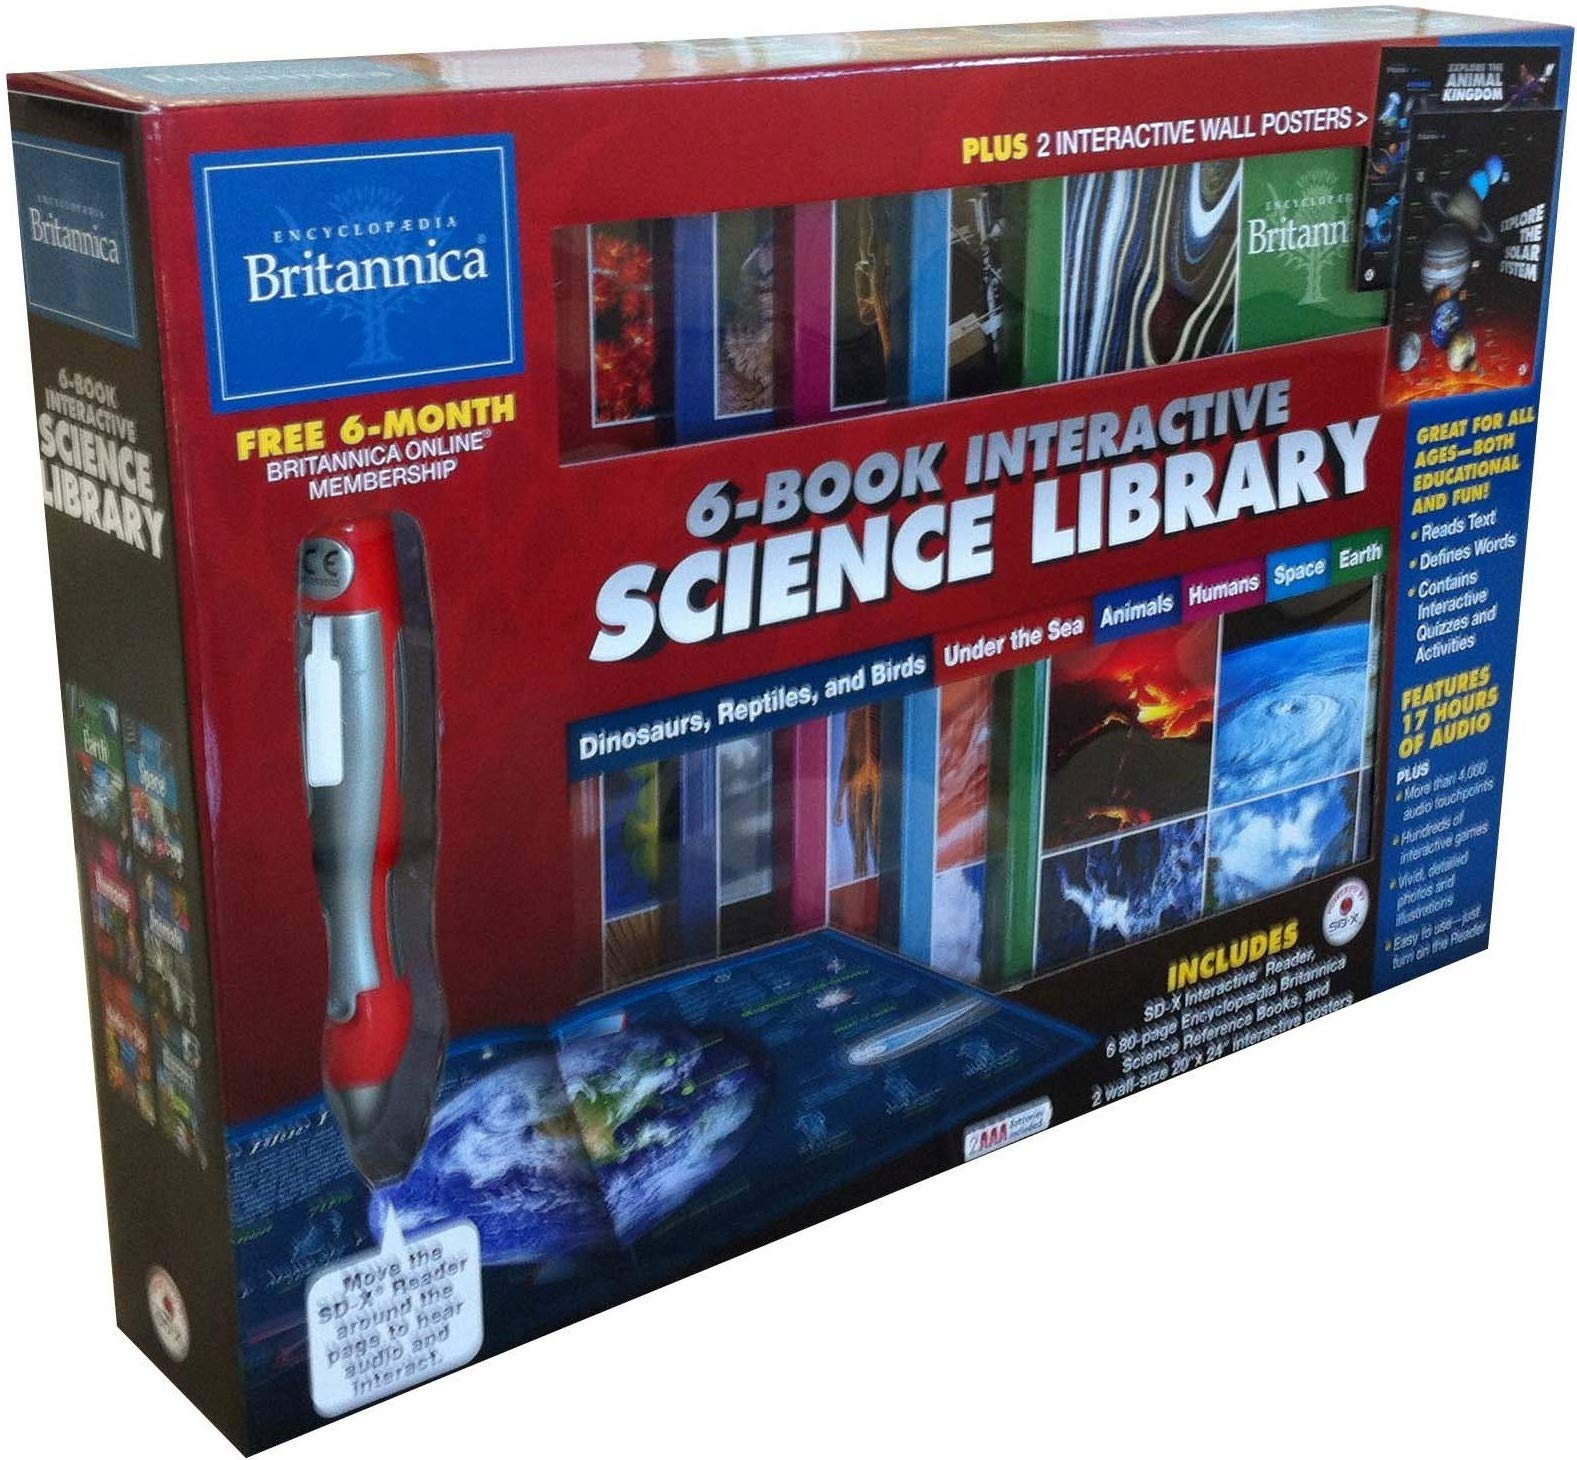 Encyclopaedia Britannica® 6-Book Interactive Science Library